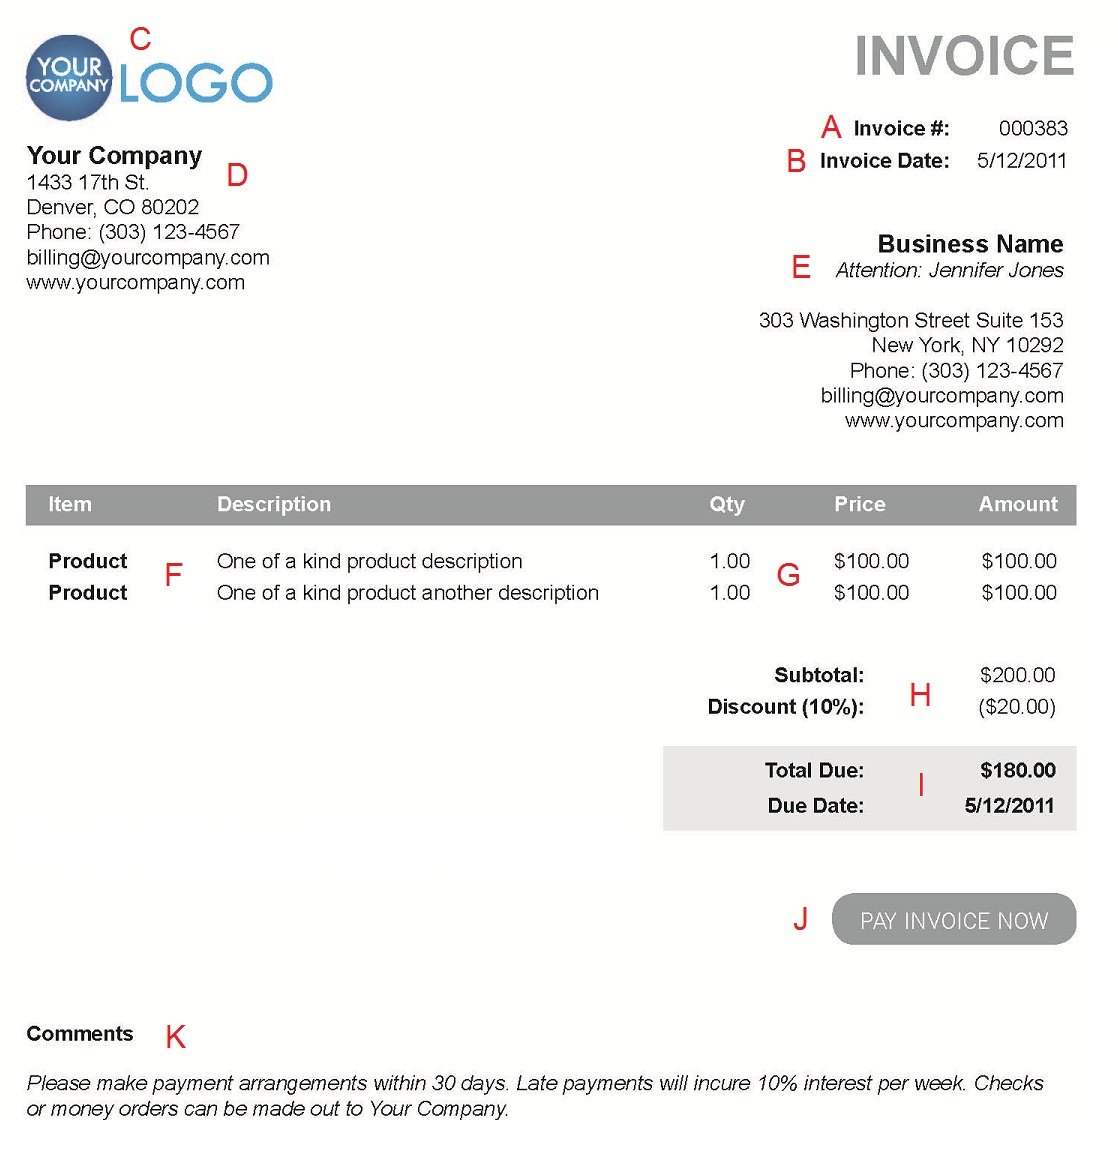 Pigbrotherus  Picturesque The  Different Sections Of An Electronic Payment Invoice With Lovable A  With Divine Free Template For Invoices Also Microsoft Invoice Template  In Addition Hillstone Invoice Manager And Ato Tax Invoices As Well As Invoice Template Self Employed Additionally Invoice Financing Uk From Paysimplecom With Pigbrotherus  Lovable The  Different Sections Of An Electronic Payment Invoice With Divine A  And Picturesque Free Template For Invoices Also Microsoft Invoice Template  In Addition Hillstone Invoice Manager From Paysimplecom